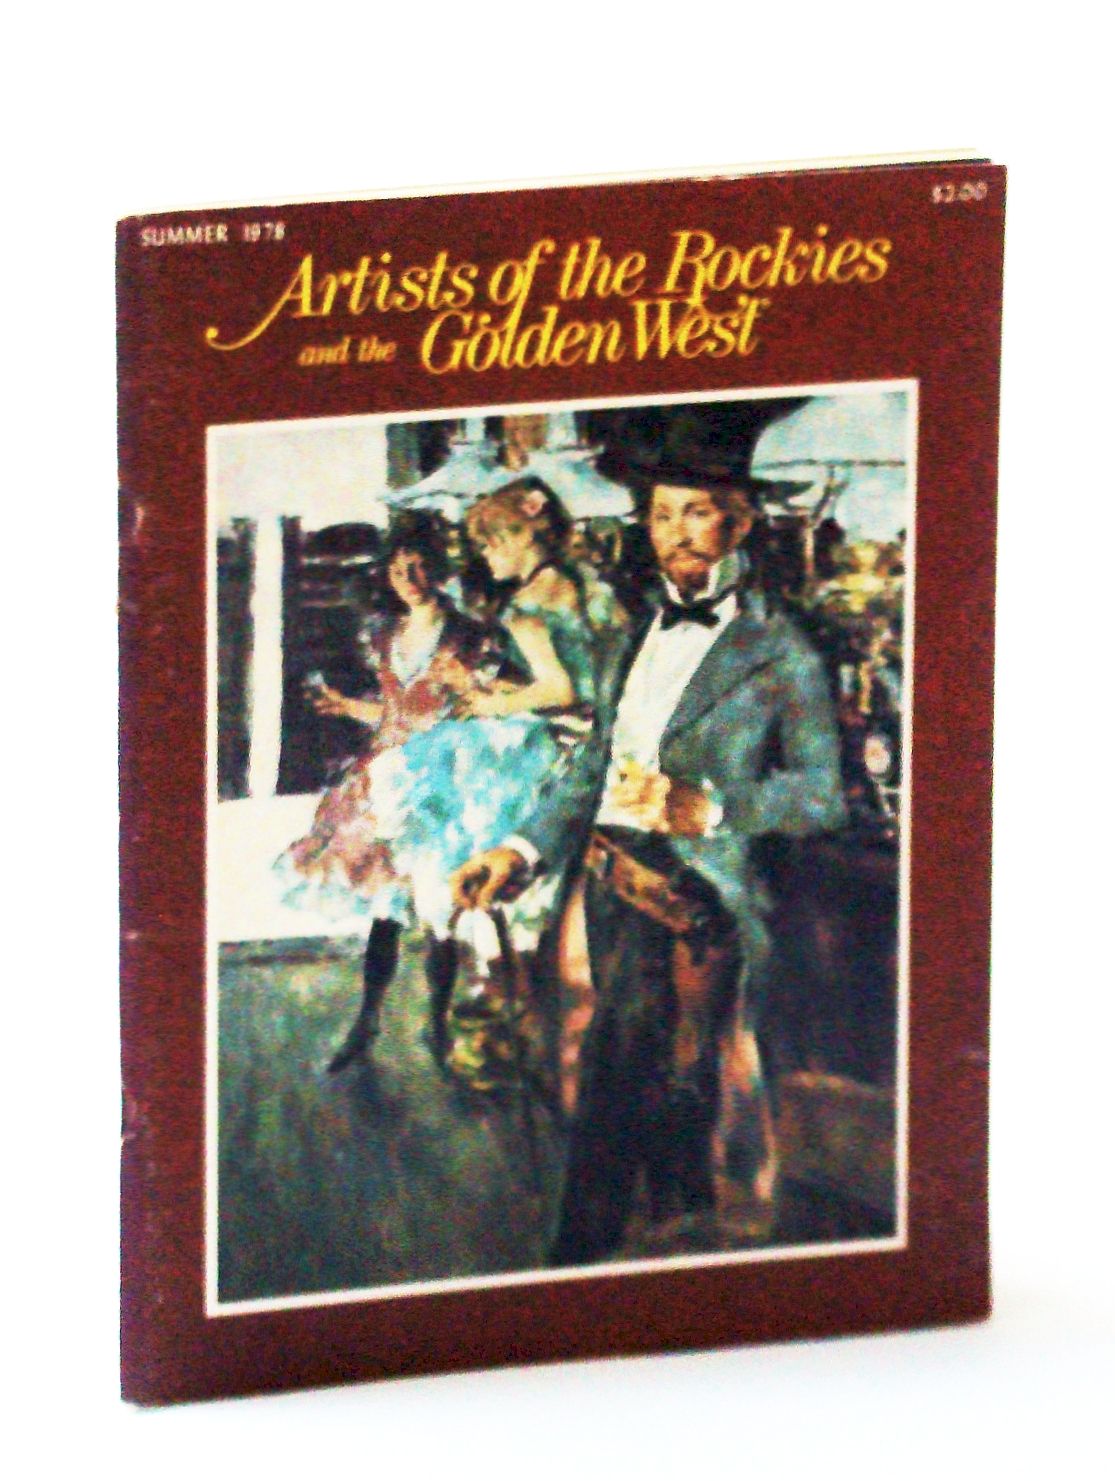 Image for Artists of the Rockies and the Golden West Summer 1978 Volume V Issue 3